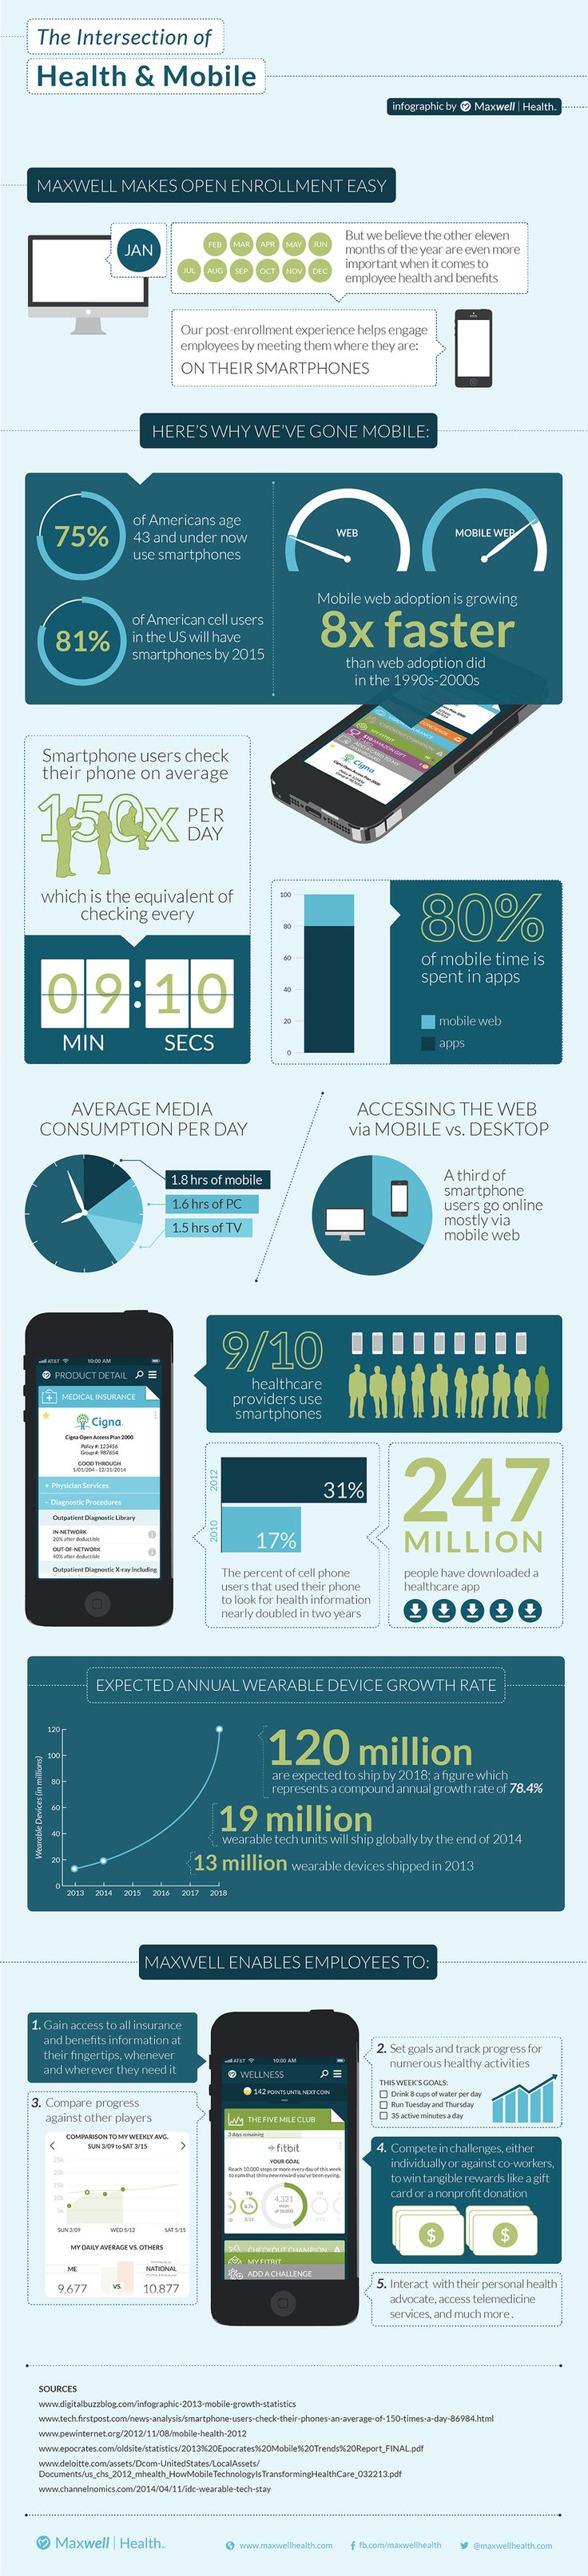 Great infographic from @Maxwell Health #mealth #wellness